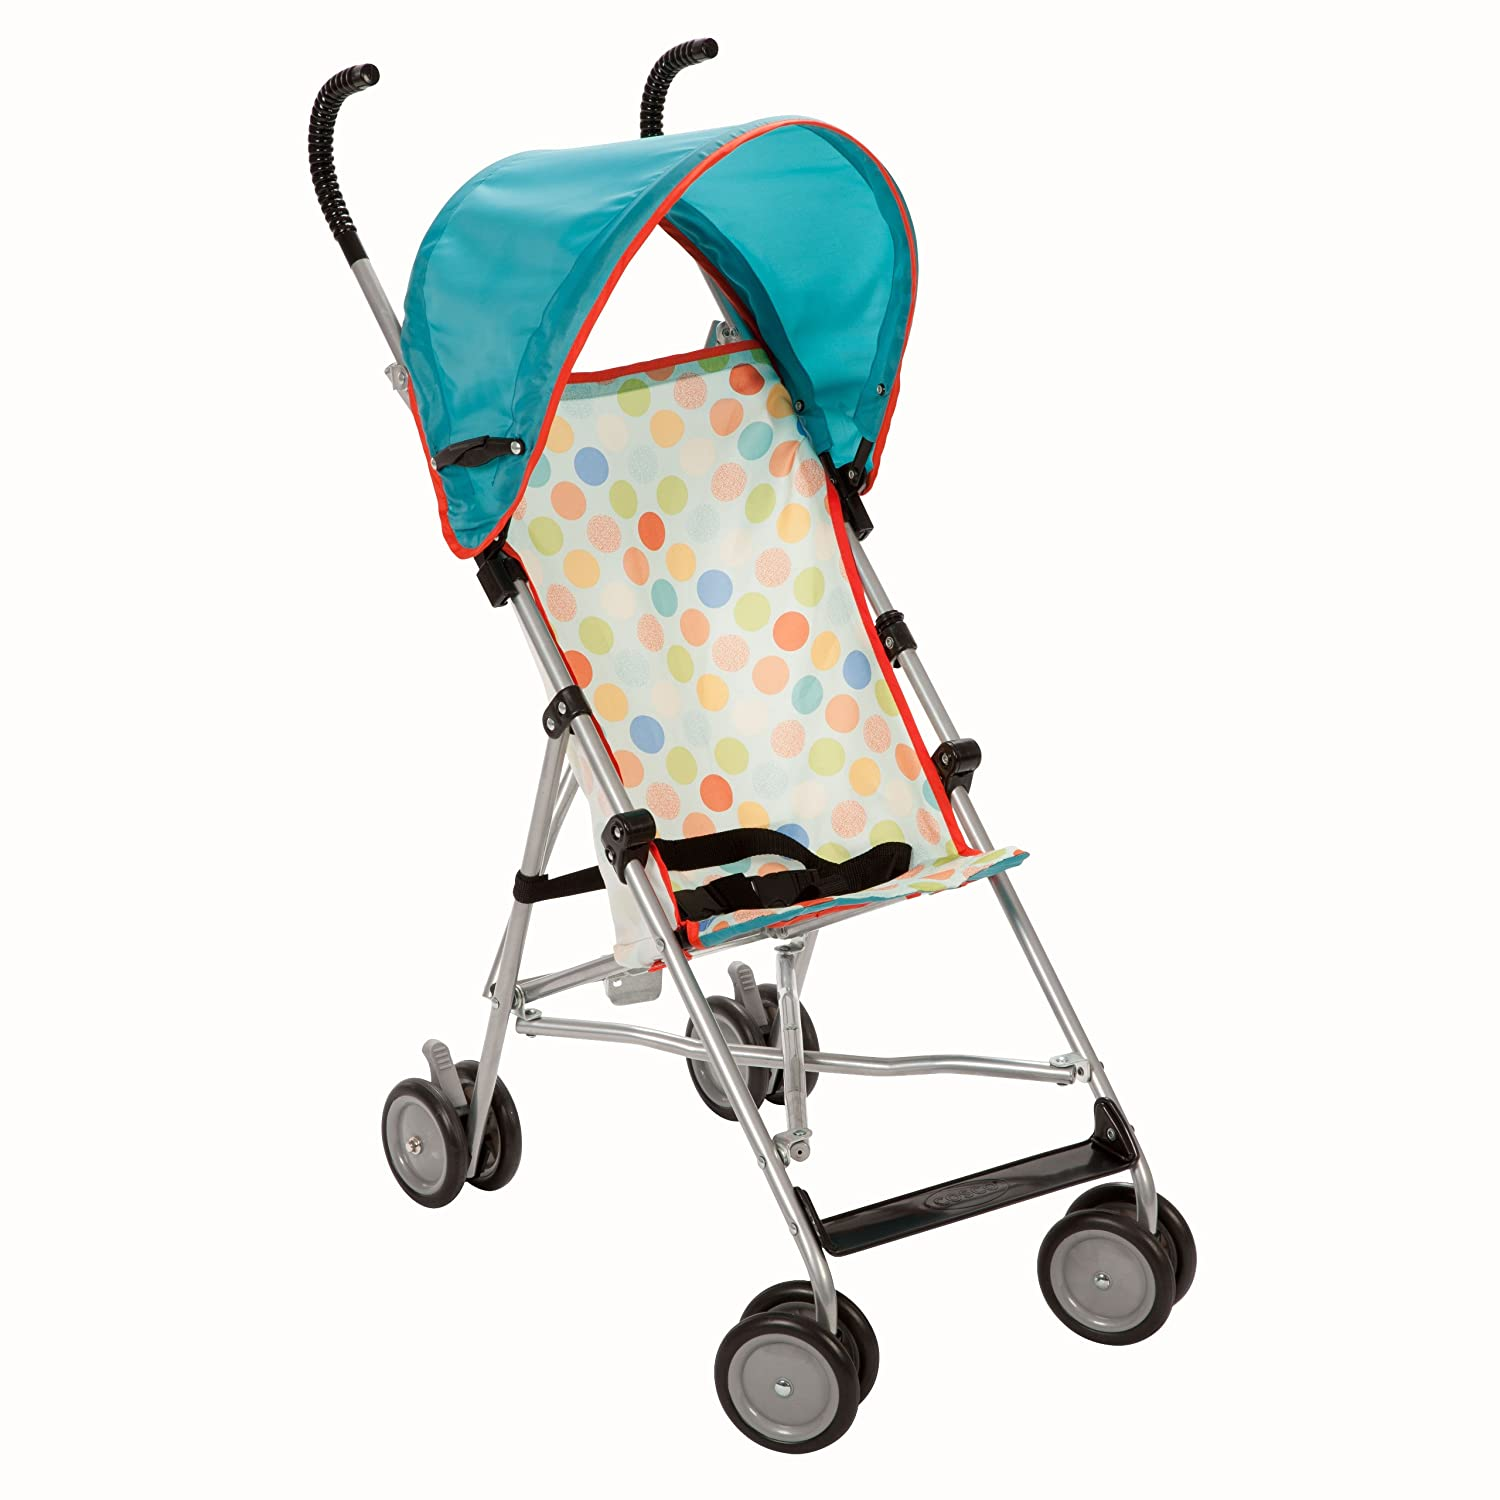 Top 9 Best Travel Strollers for your Baby Reviews in 2020 6